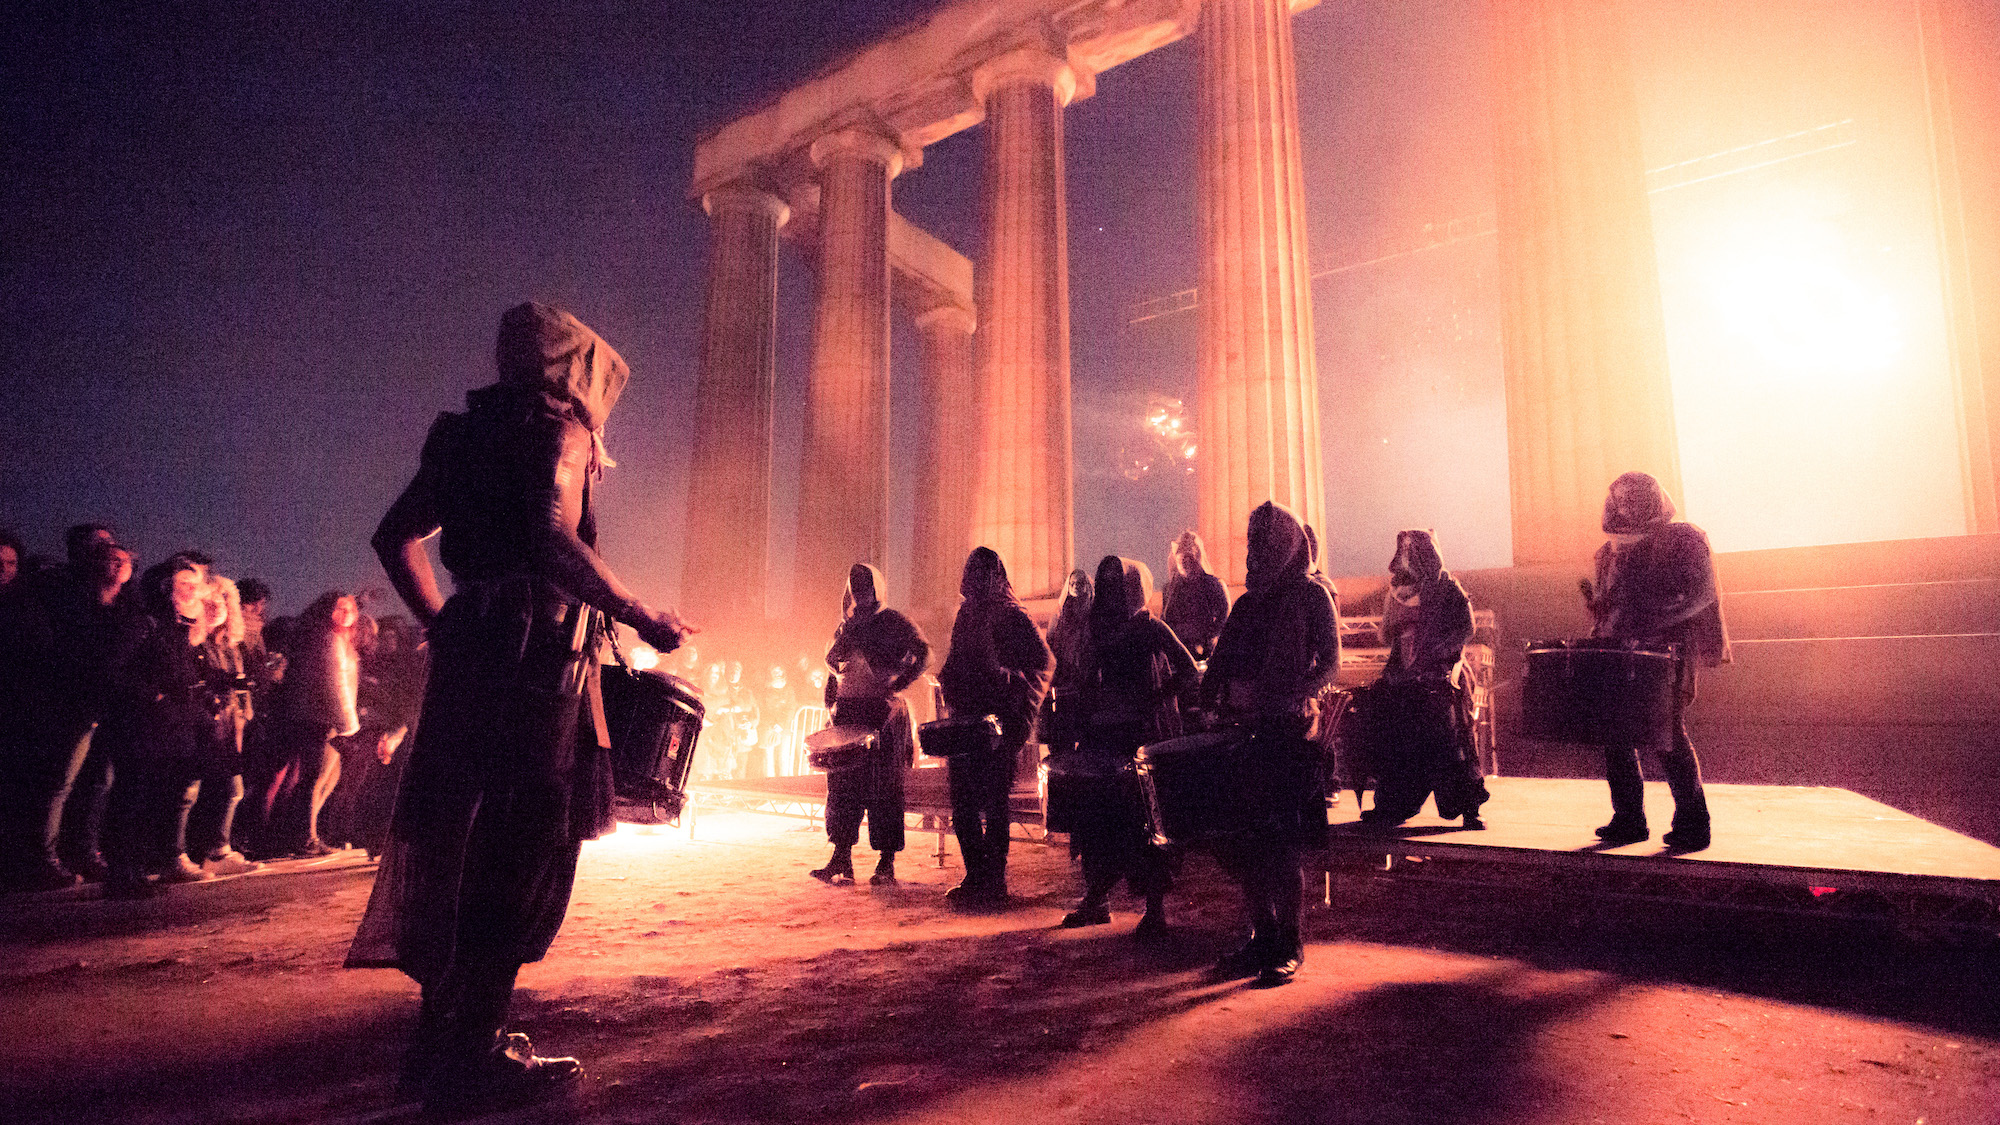 Why do we celebrate an ancient pagan festival in modern times?